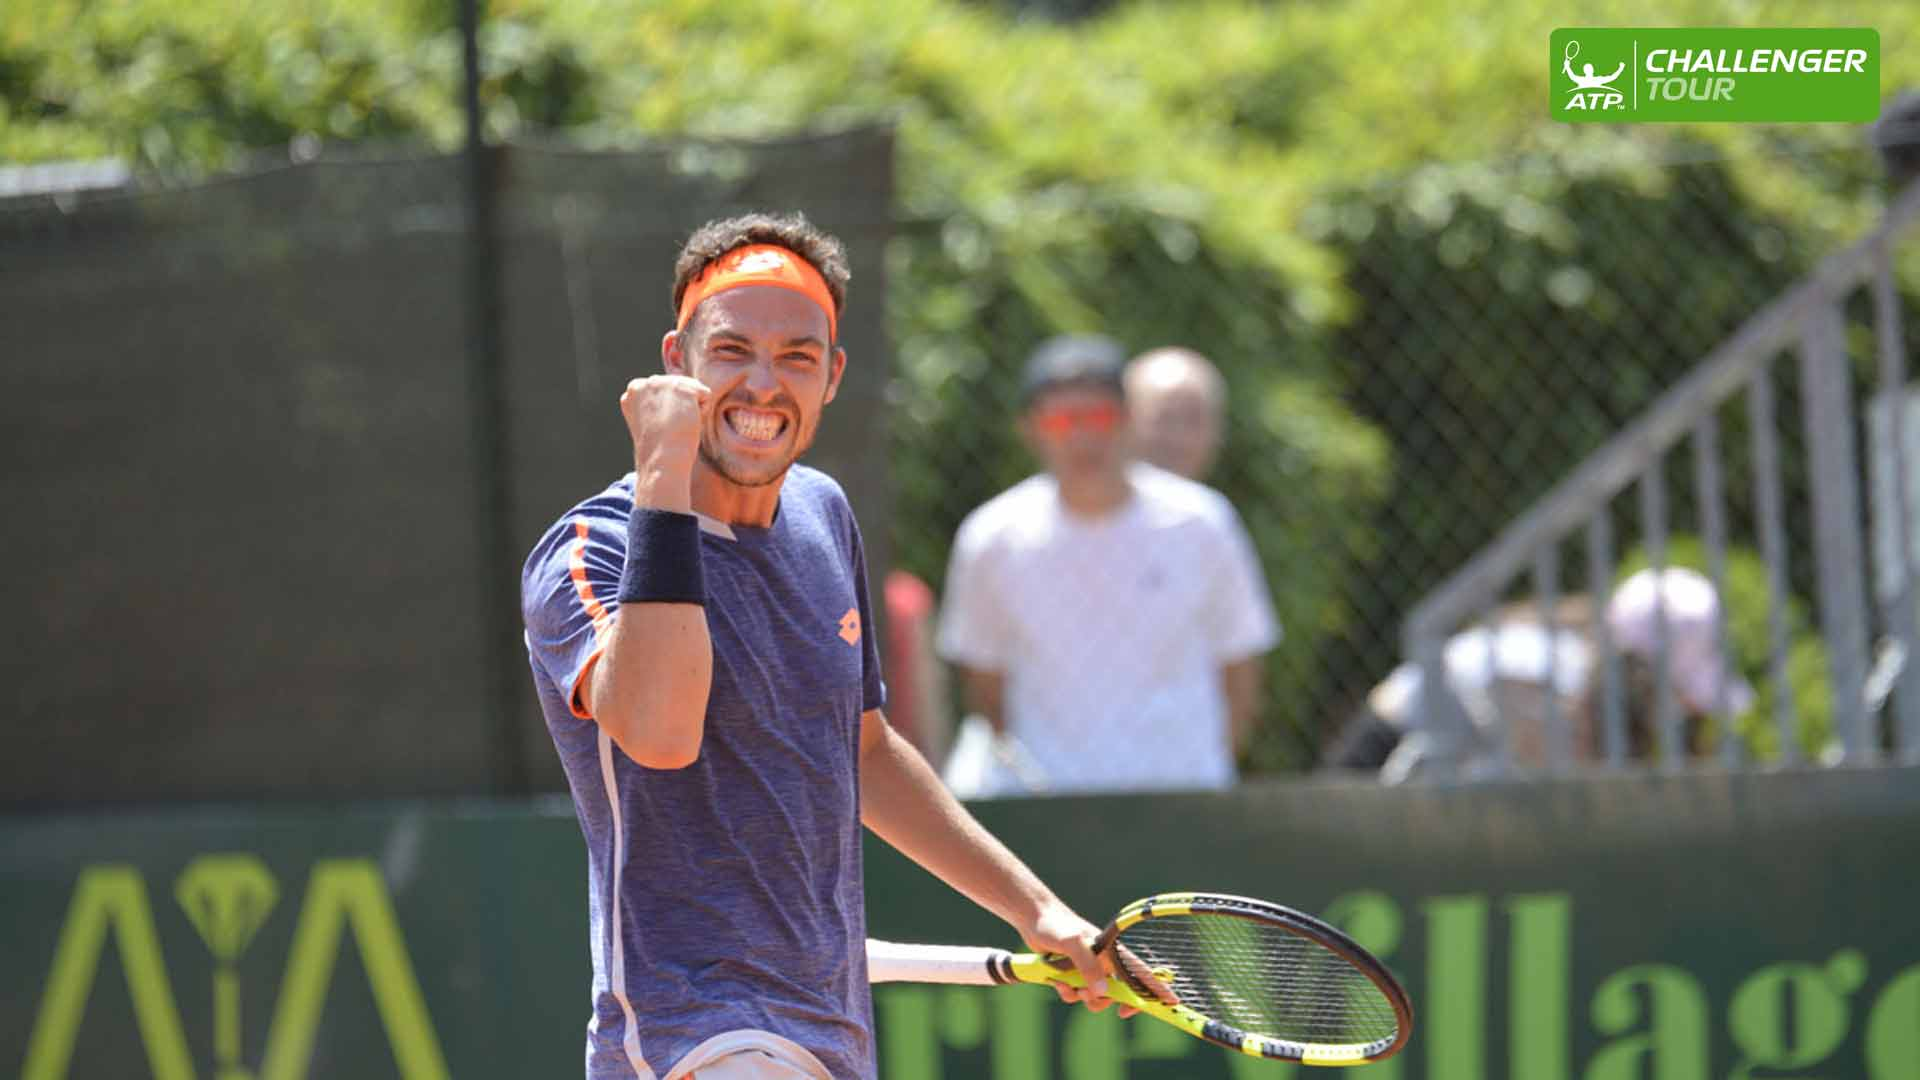 Marco Cecchinato wins the ATP Challenger Tour event in Milan.